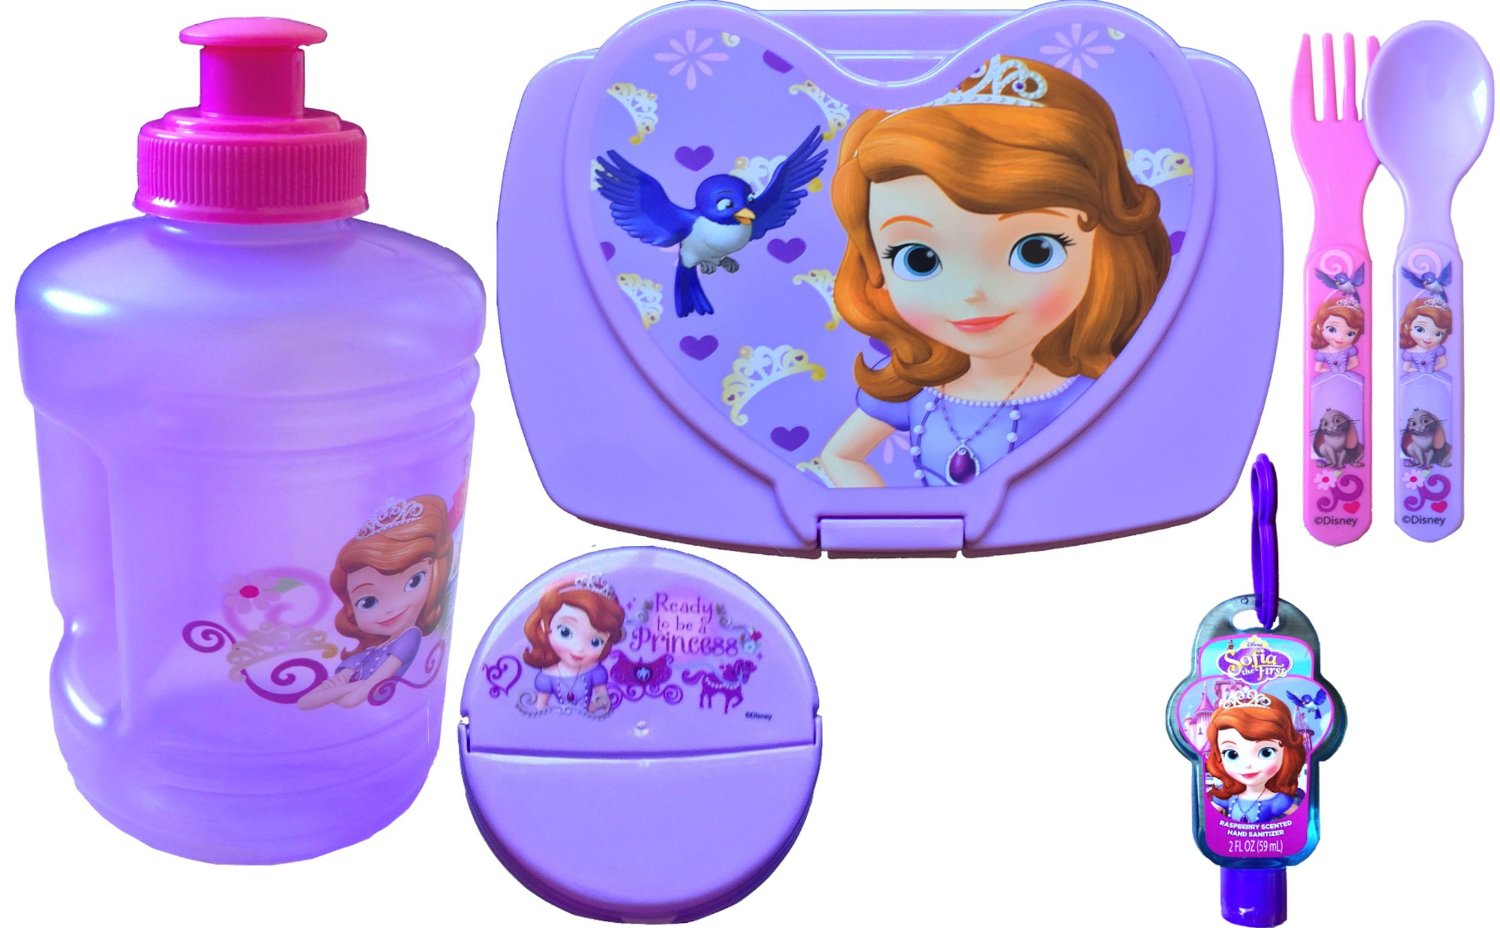 Sofia the First 6 Piece Back to School Girls Lunch Kit Includes Water Jug,sofia the First Sandwich Container and Snack, Sofia the First Flatware Set,hand Sanitizer Back to School Lunch Specials